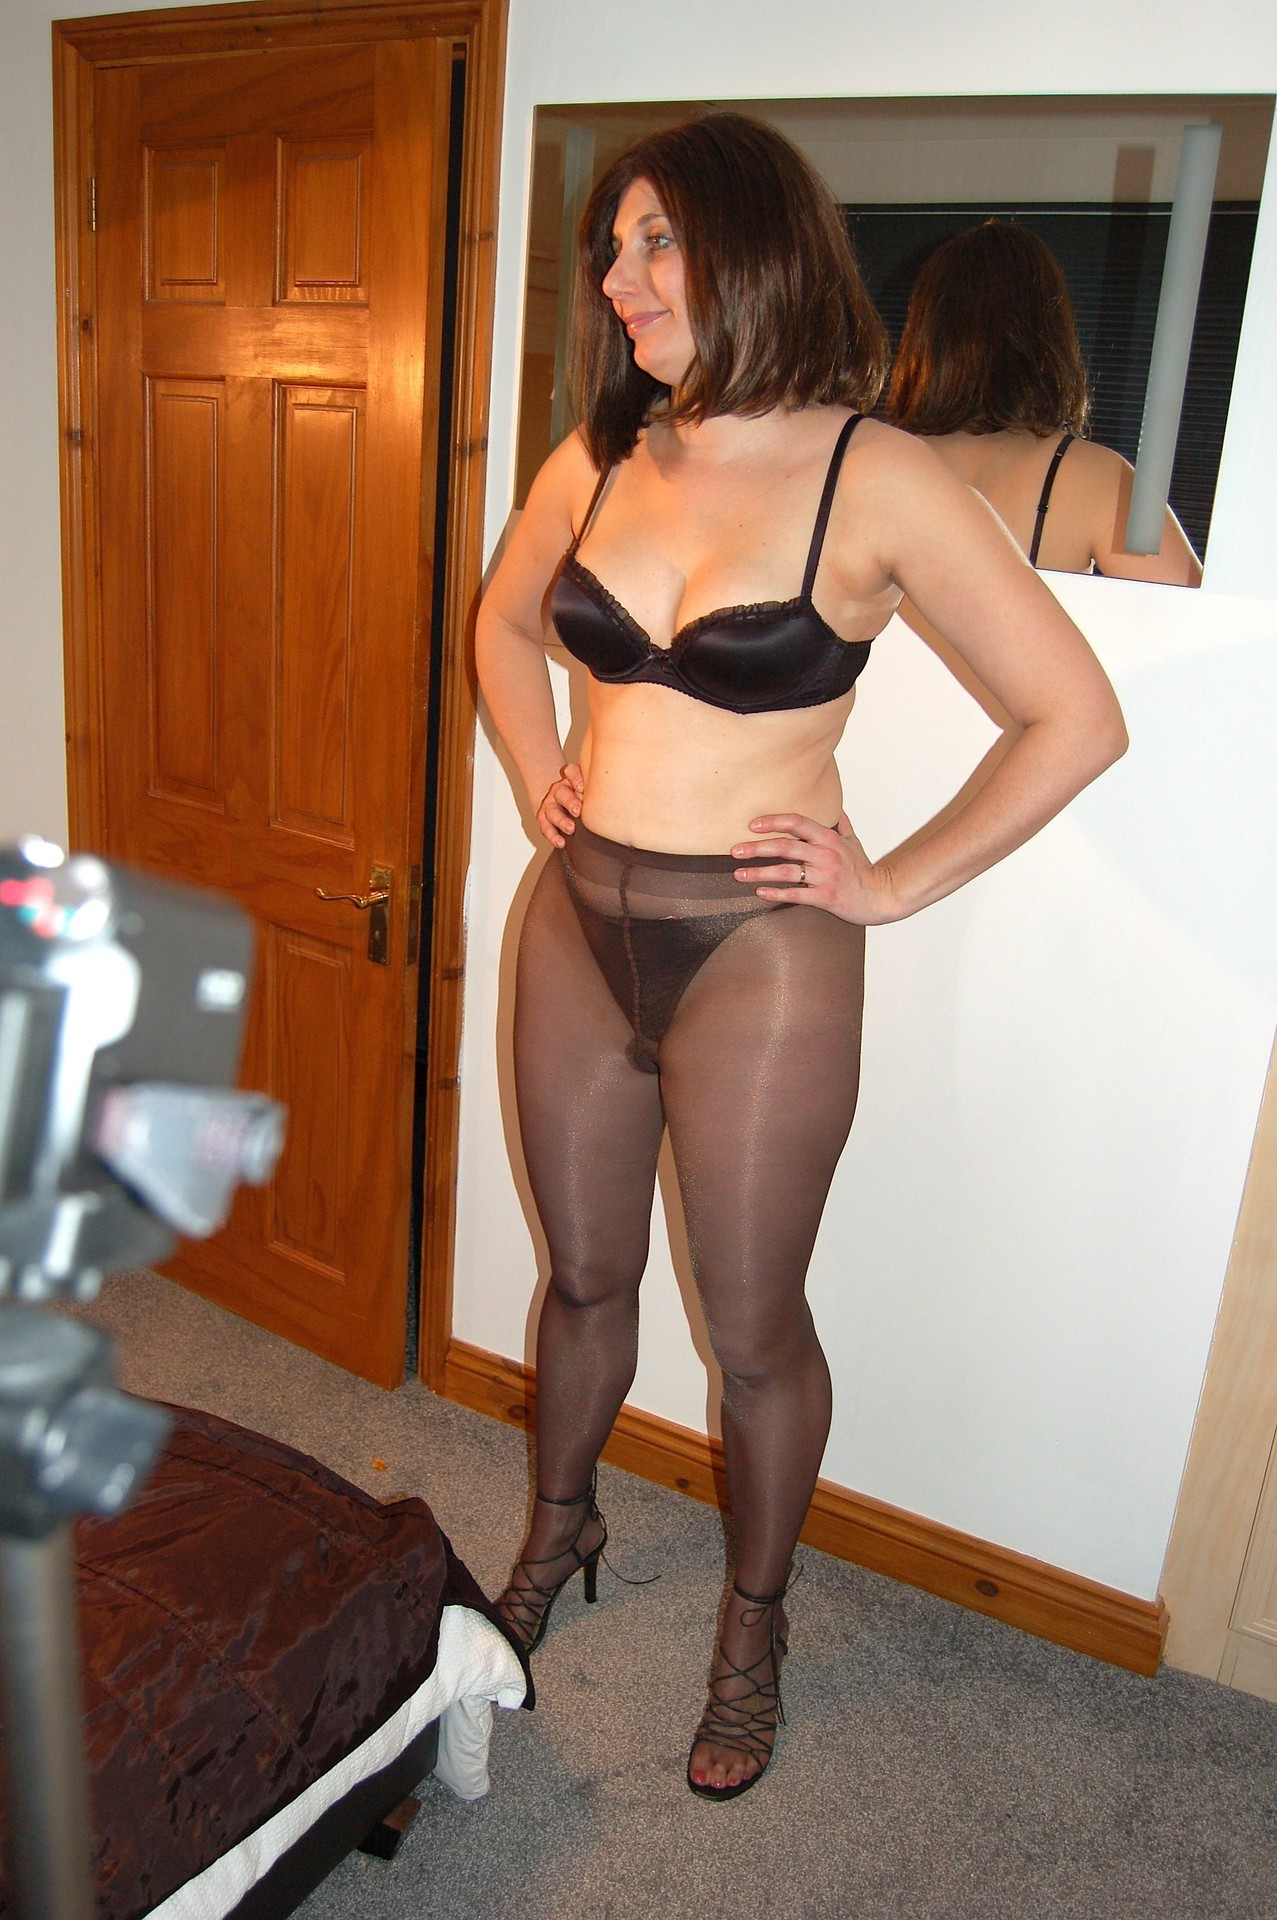 Thanks! Sex sites pantyhose sex stories brilliant Amazingly!